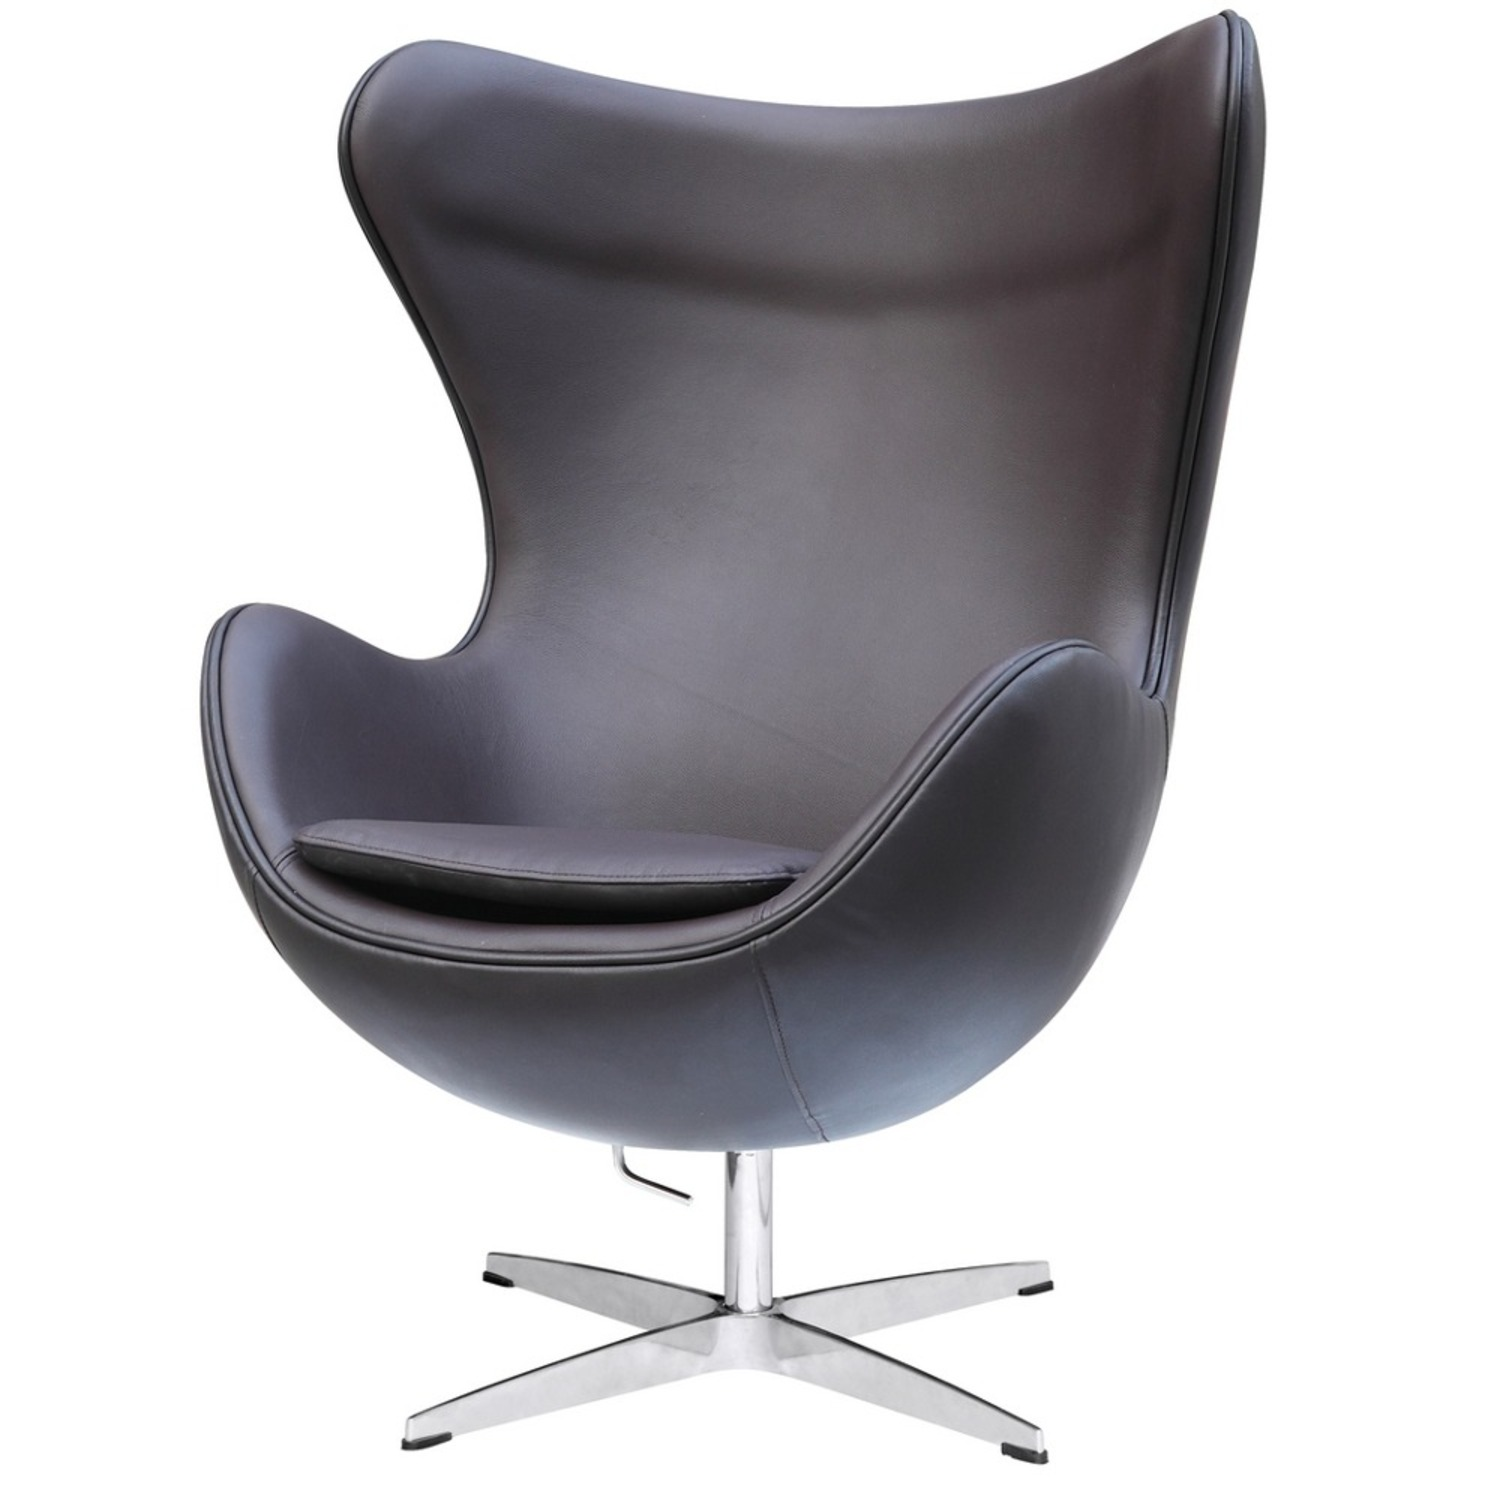 Inner Chair In Brown Leather W/ Fiberglass Frame - image-4